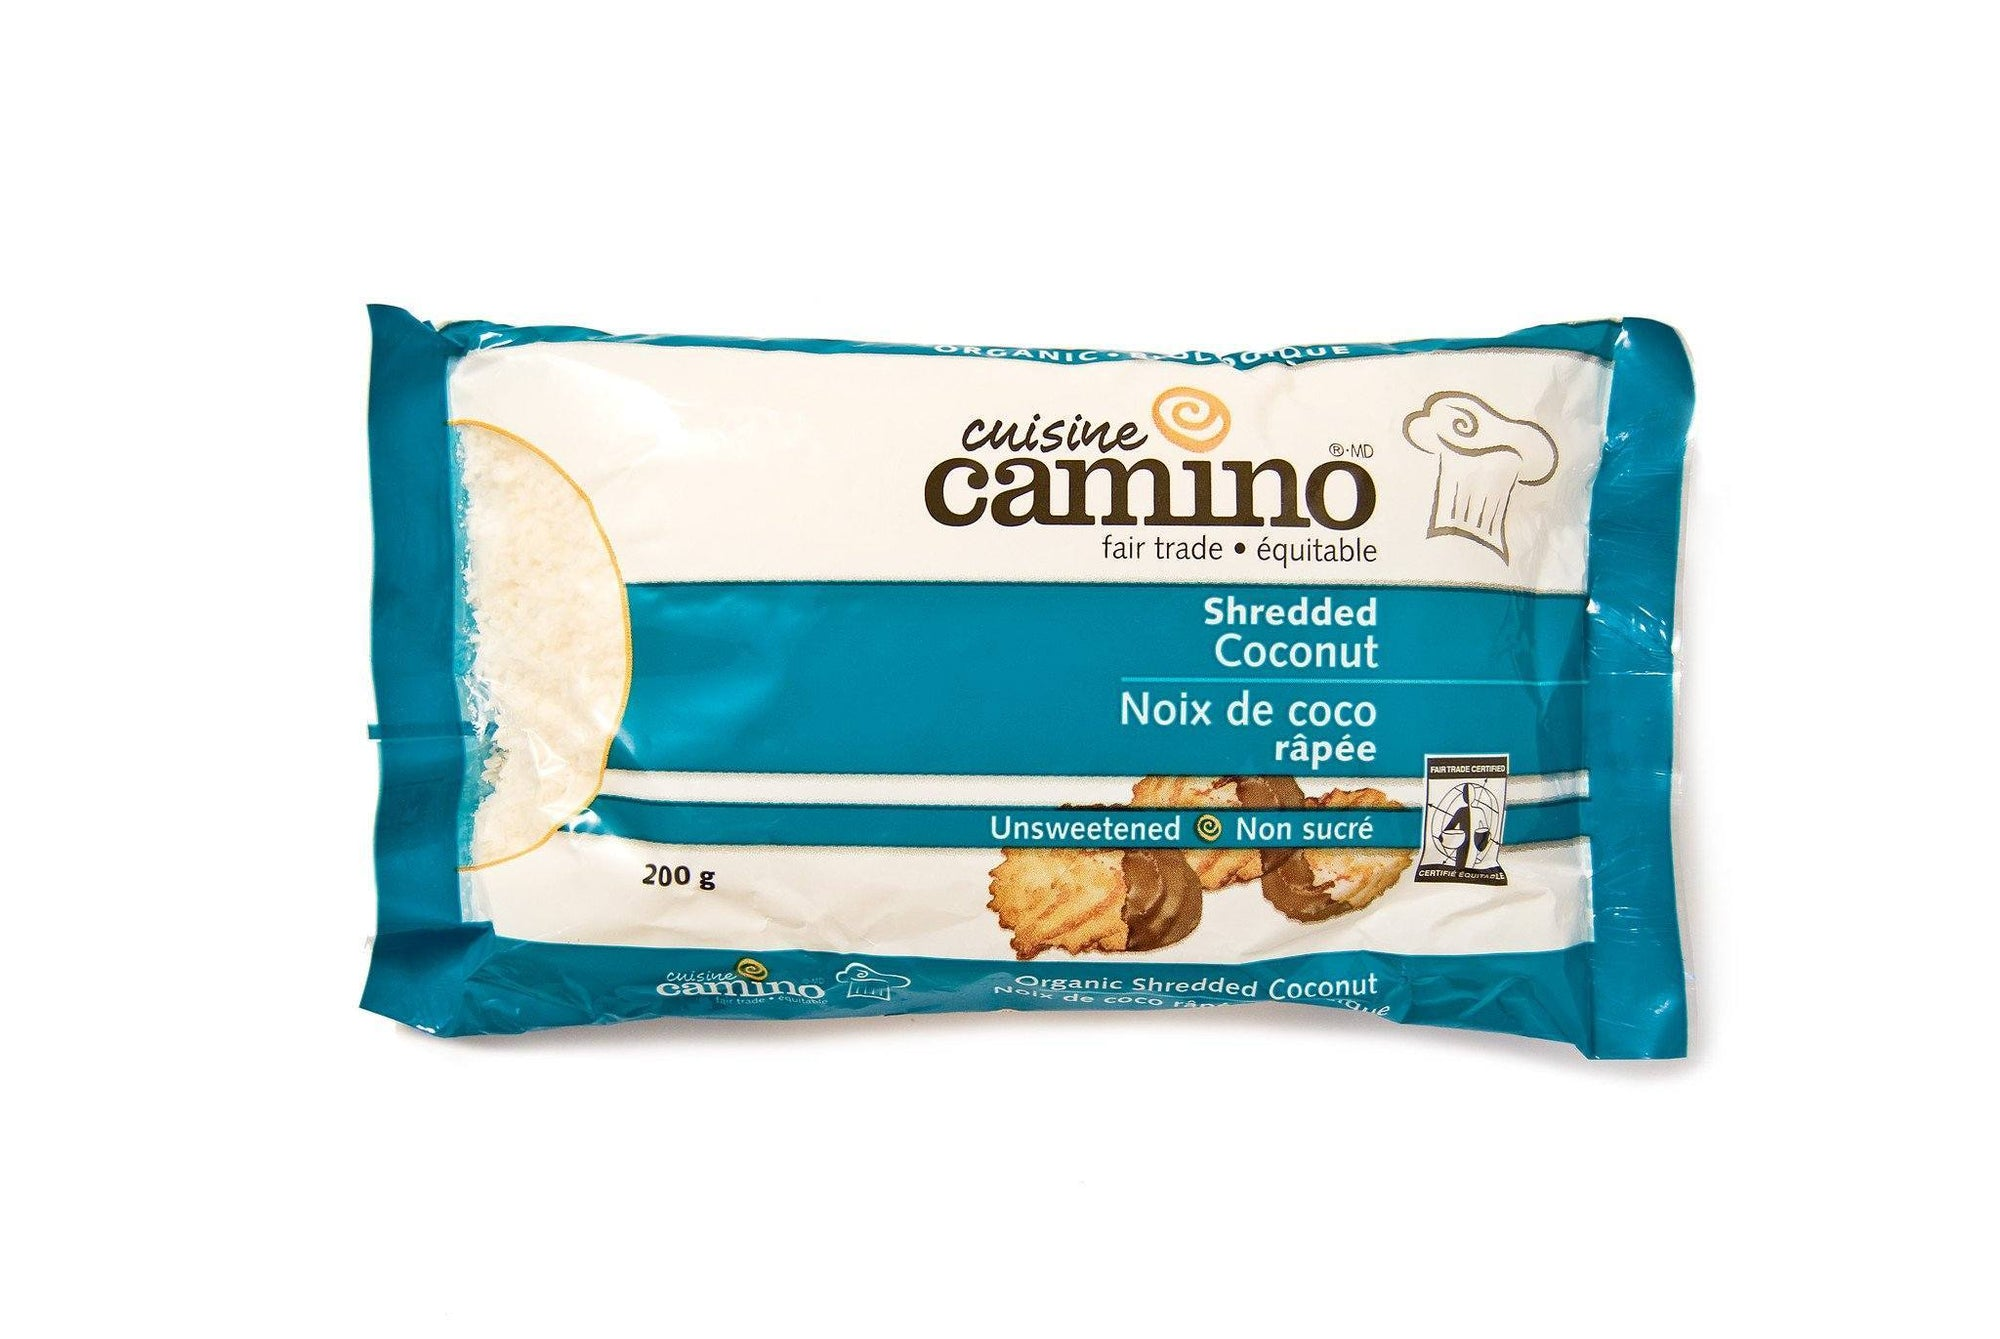 Food & Drink - Camino - Unsweetened Shredded Coconut, 200g